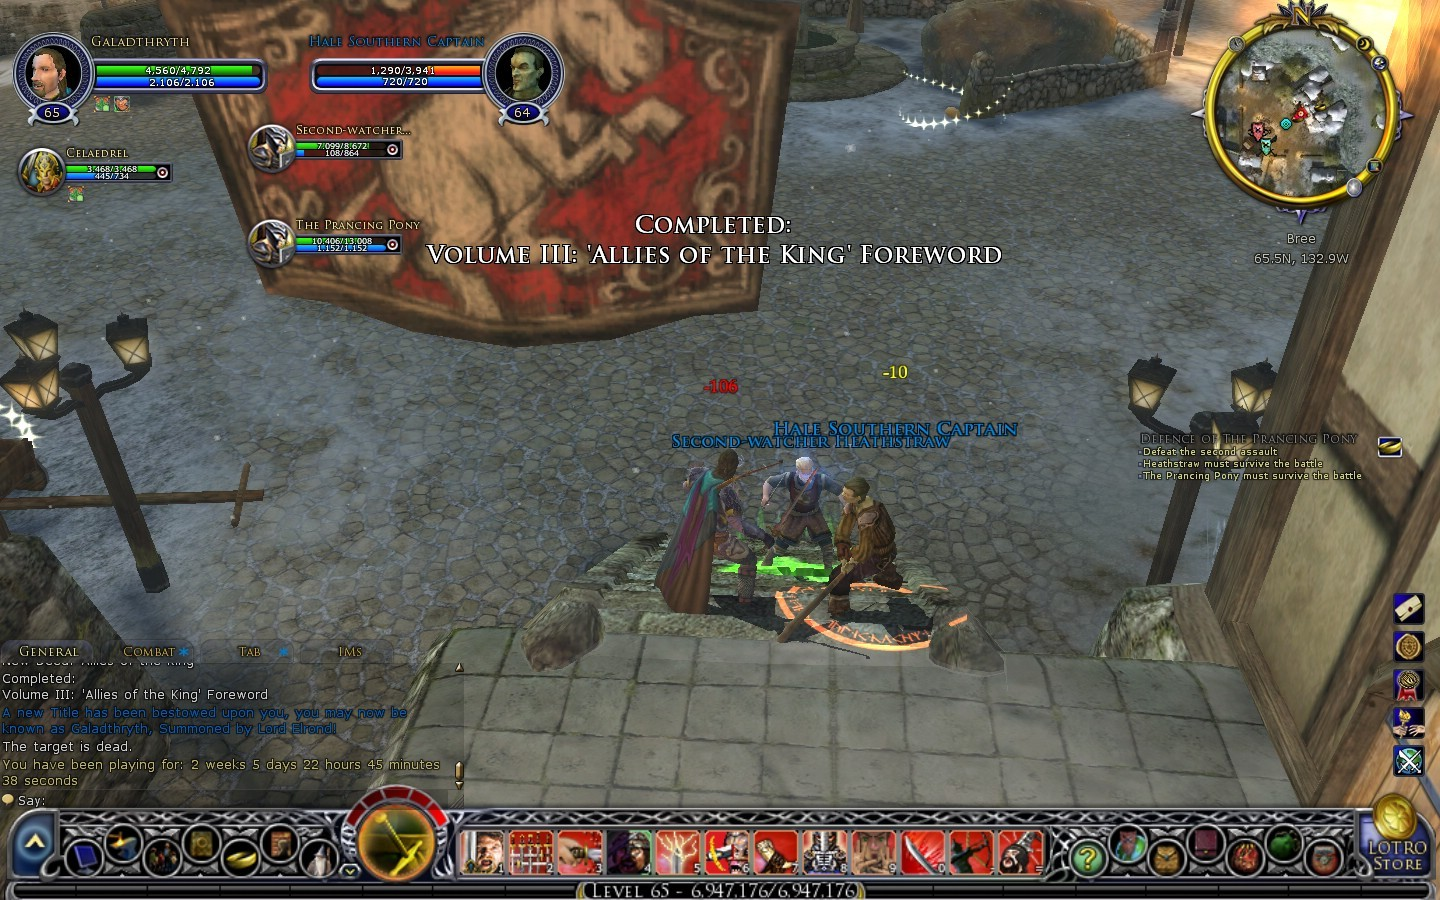 Lord of the Rings Online - Galadthryth of Rohan finally reaches level 65 after almost 500 hours in Middle Earth